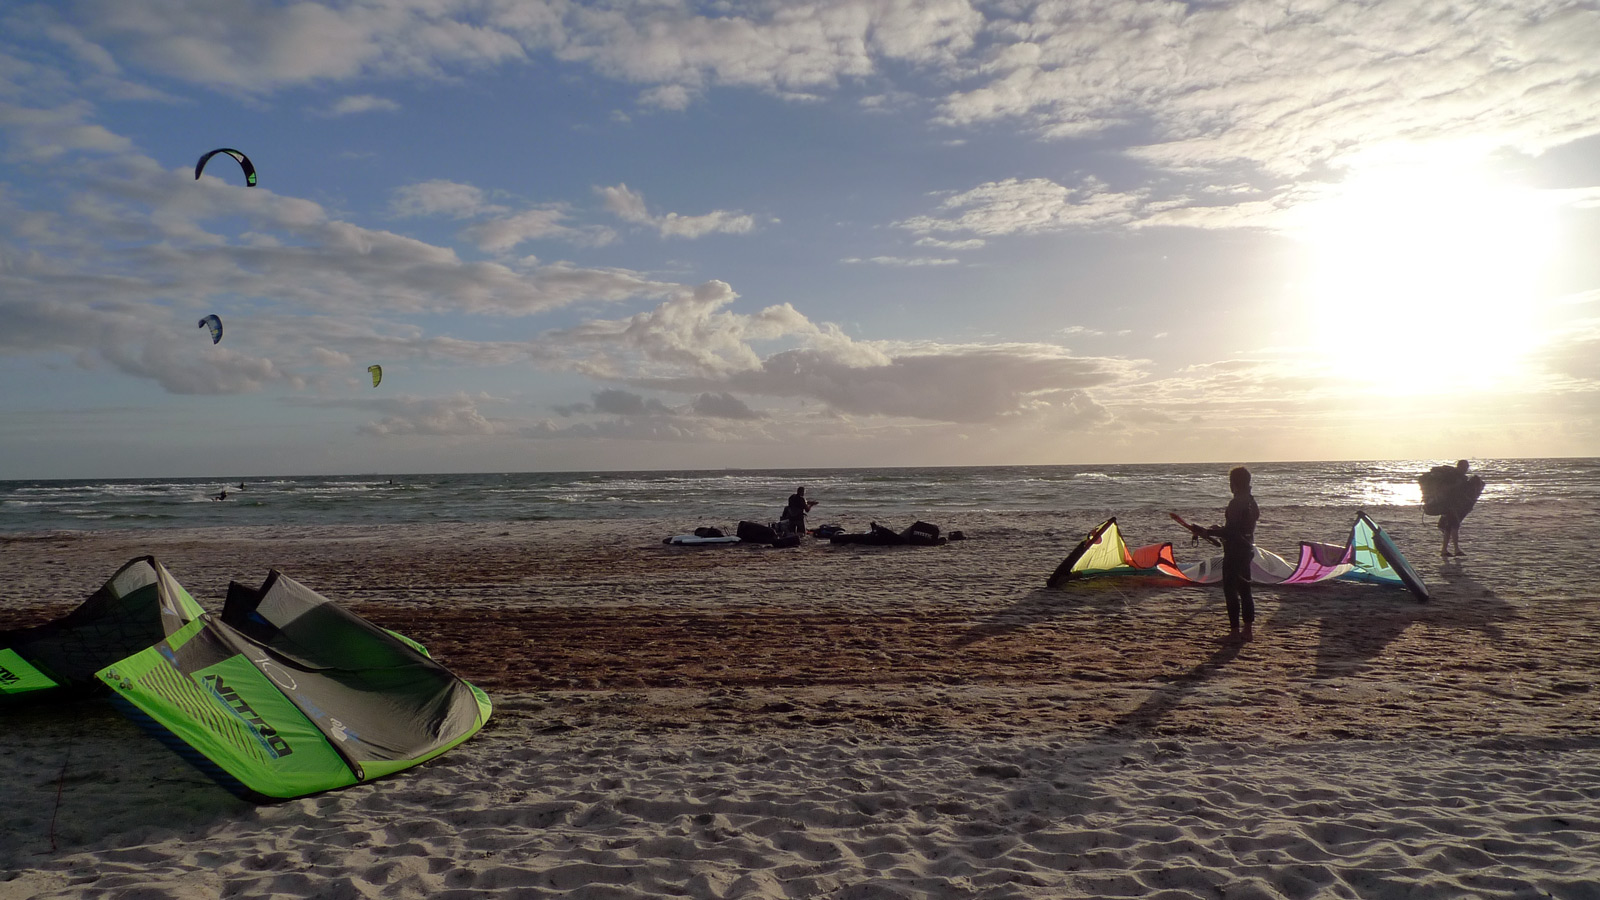 sunset kiting in skanor